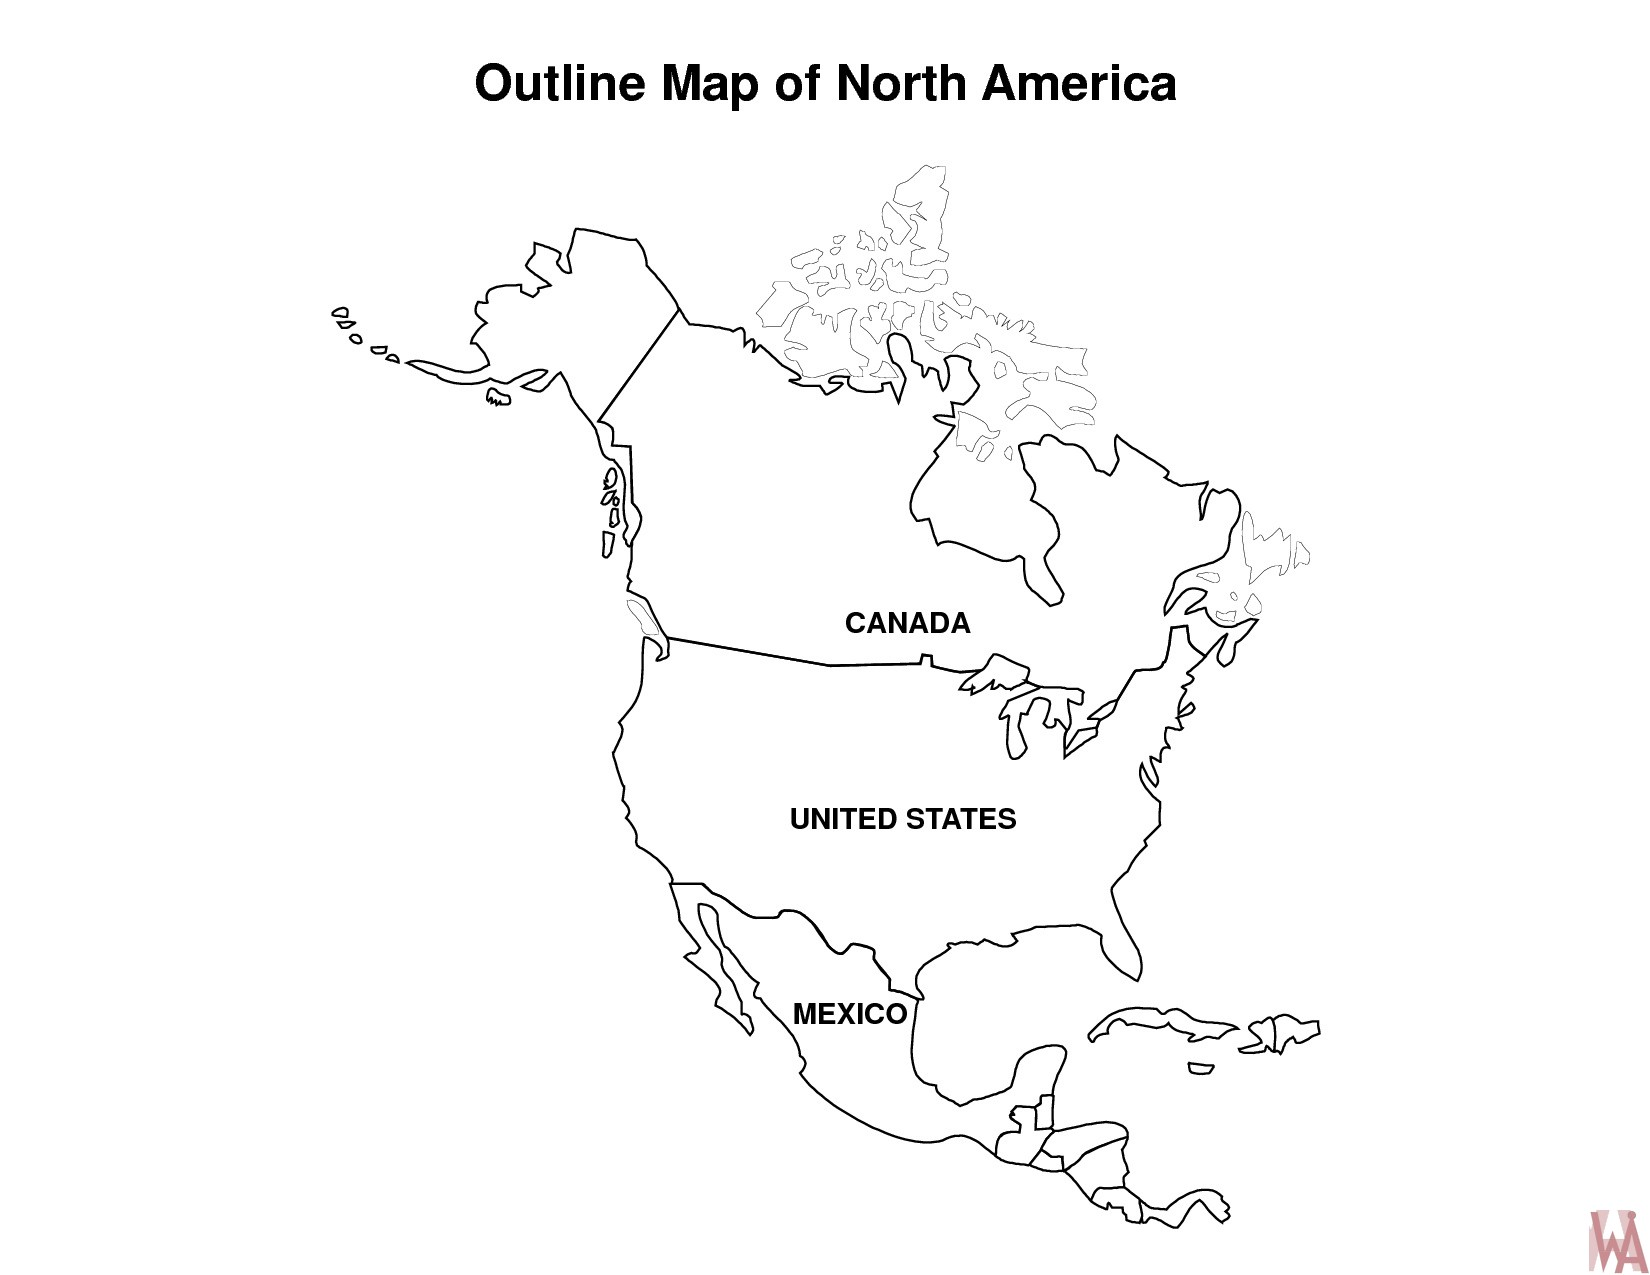 North America Outline Map Blank outline map of North America | WhatsAnswer